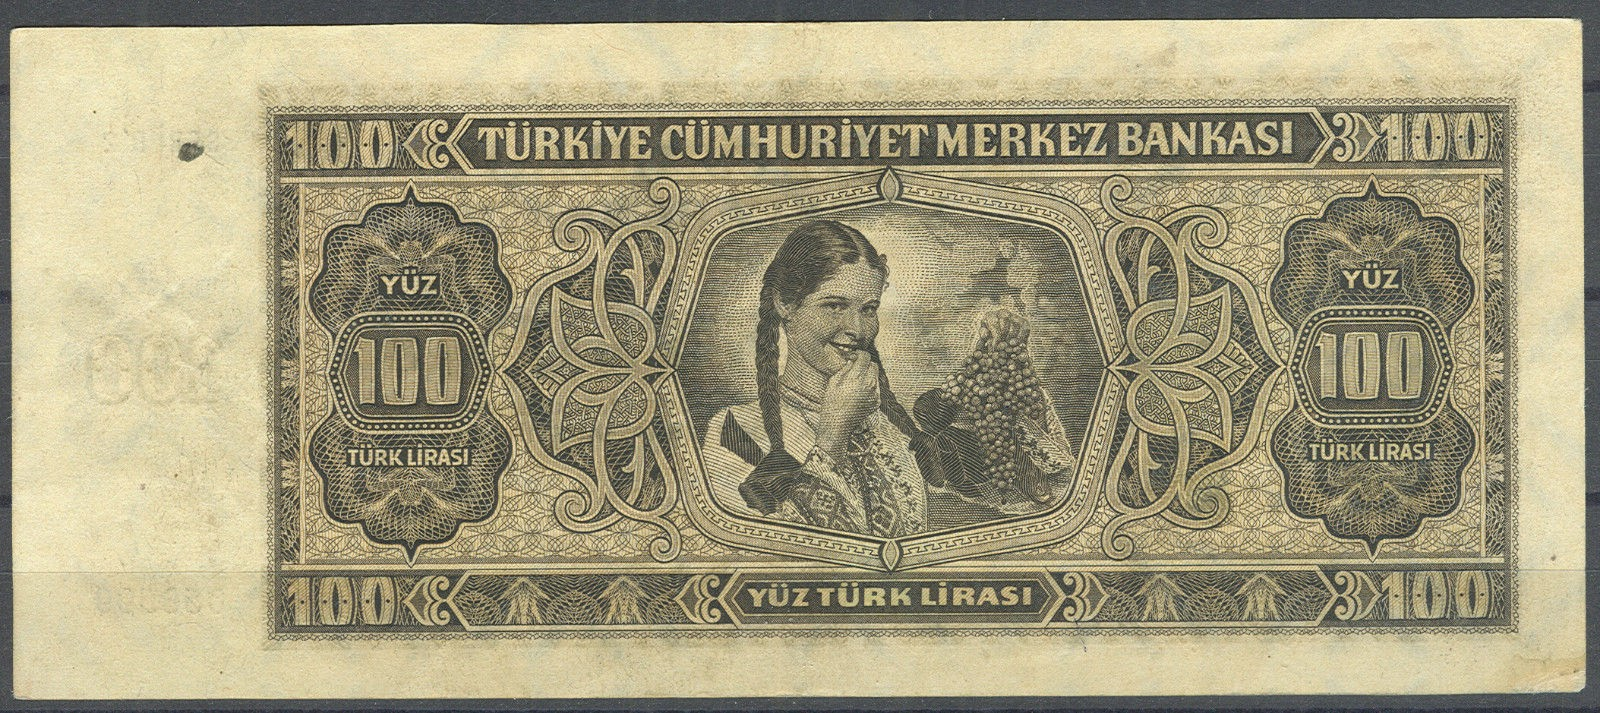 "Turkey currency money 100 Turkish Lira ""Türk Lirasi"" note 1930 girl holding grapes"